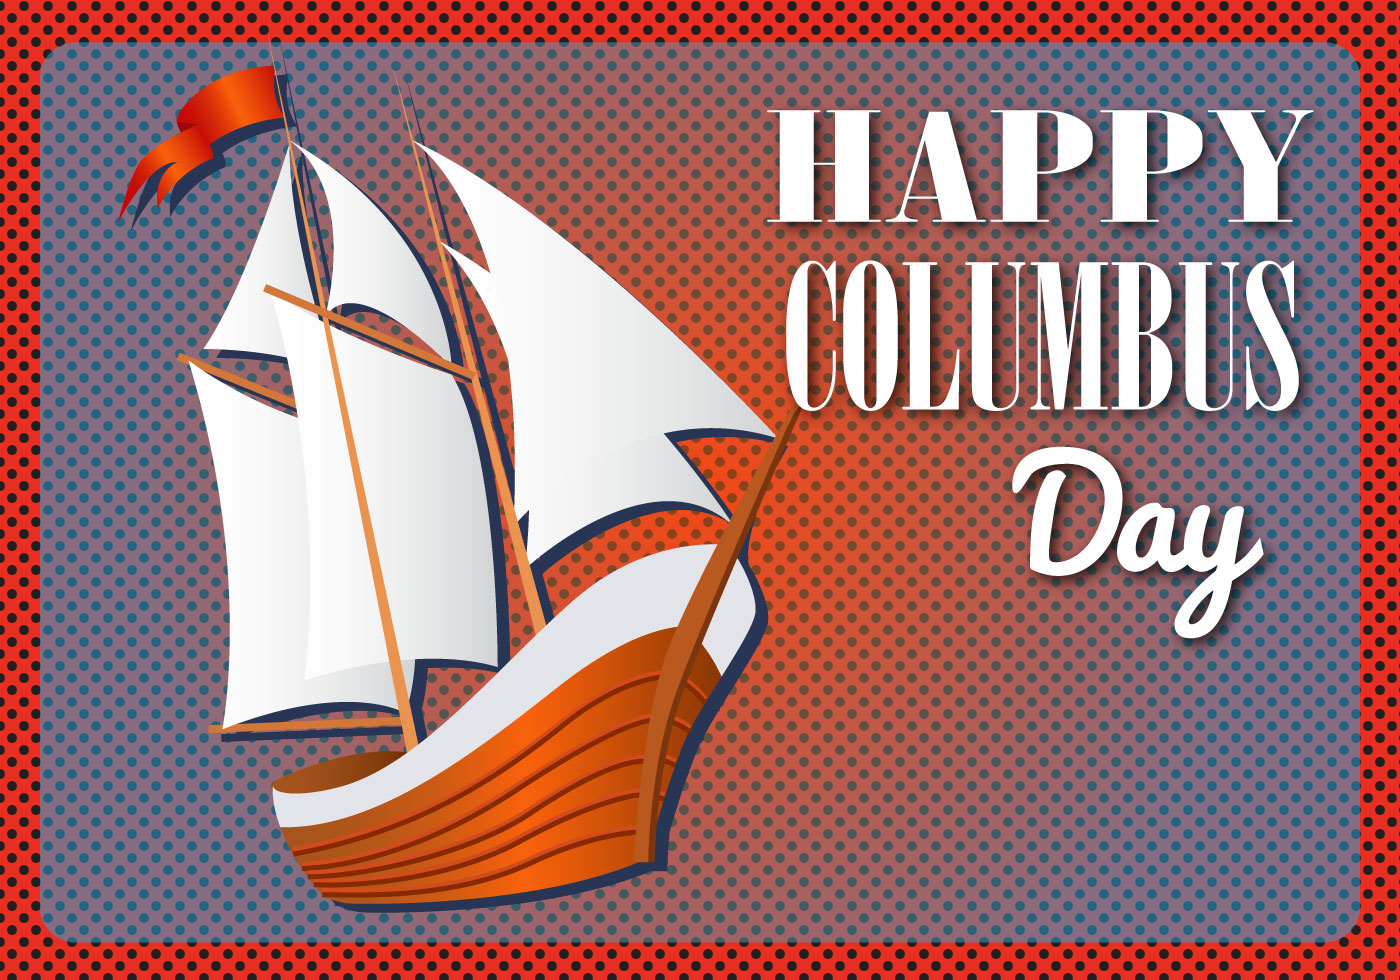 Advertisement ©2020 clipartpanda.com about terms movie subtitles number lookup. Free Happy Columbus Day Vector 111701 Vector Art at Vecteezy